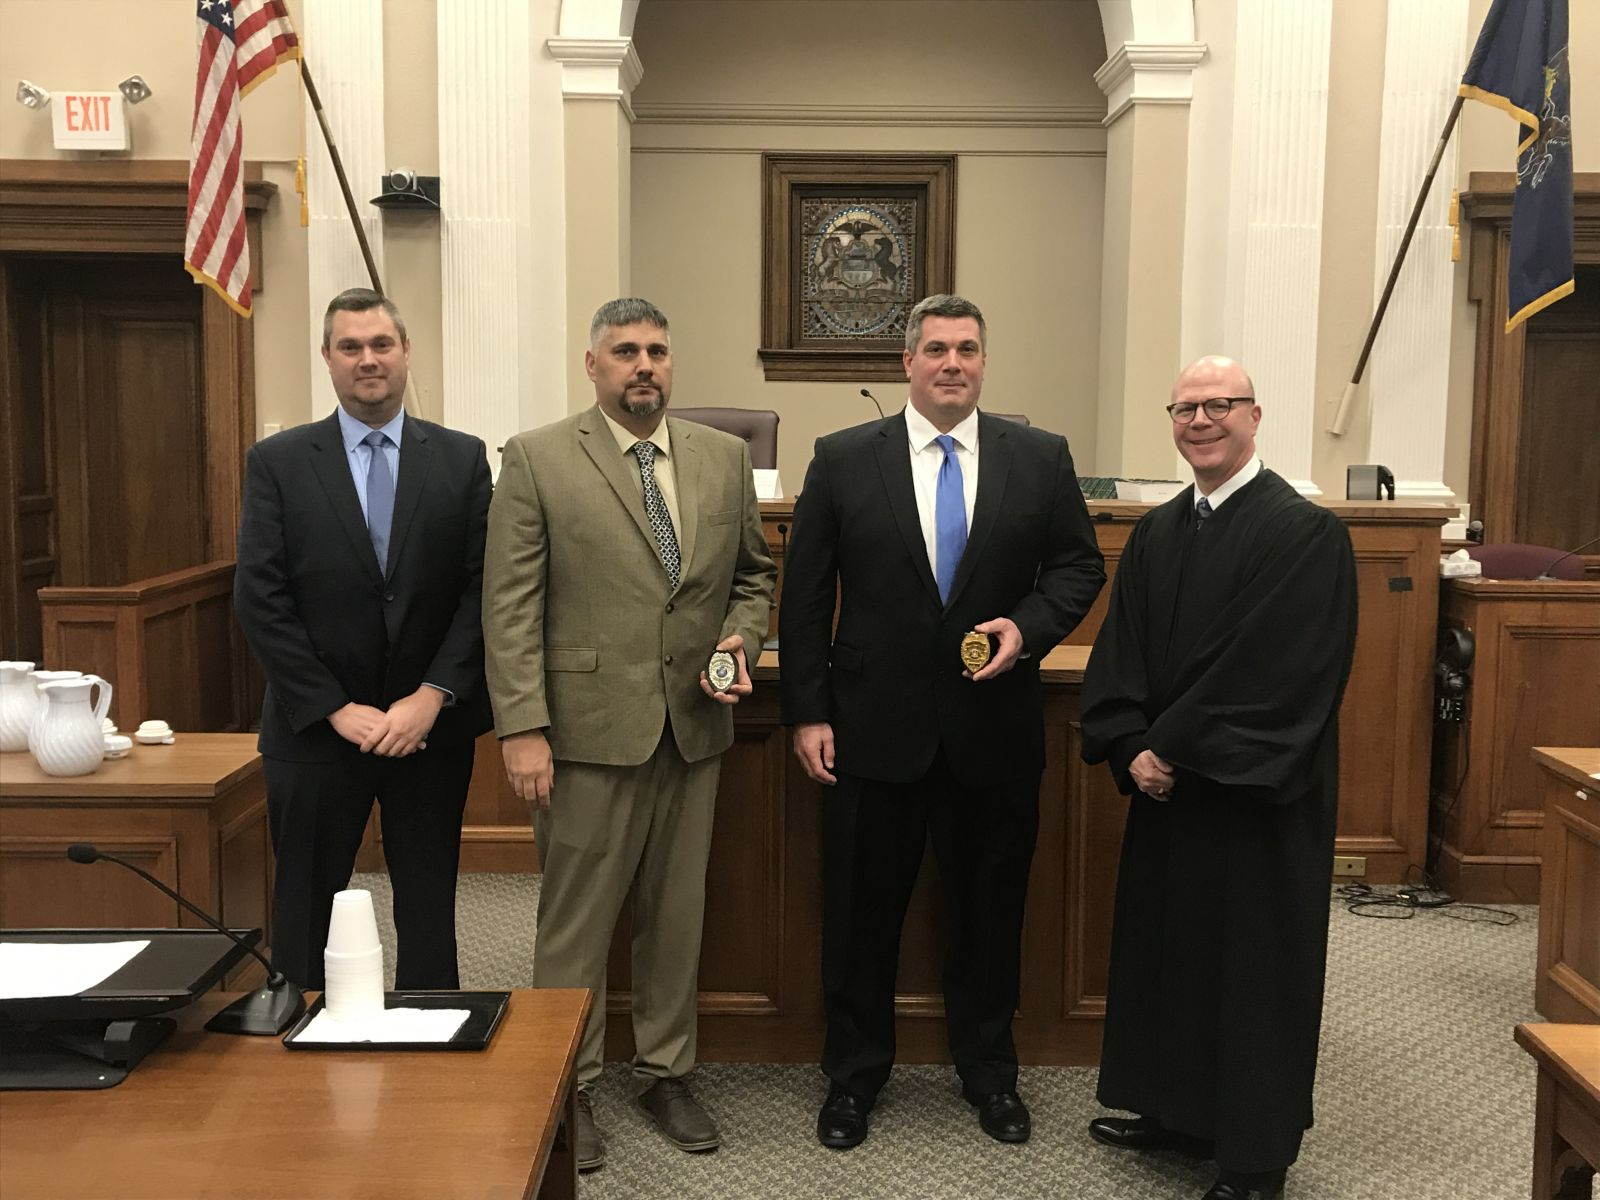 Pictured from left to right: Chief Douglas Wilburne, Officer William Rogers, Deputy Chief Geoffrey Willett, President Judge Shawn D. Meyers